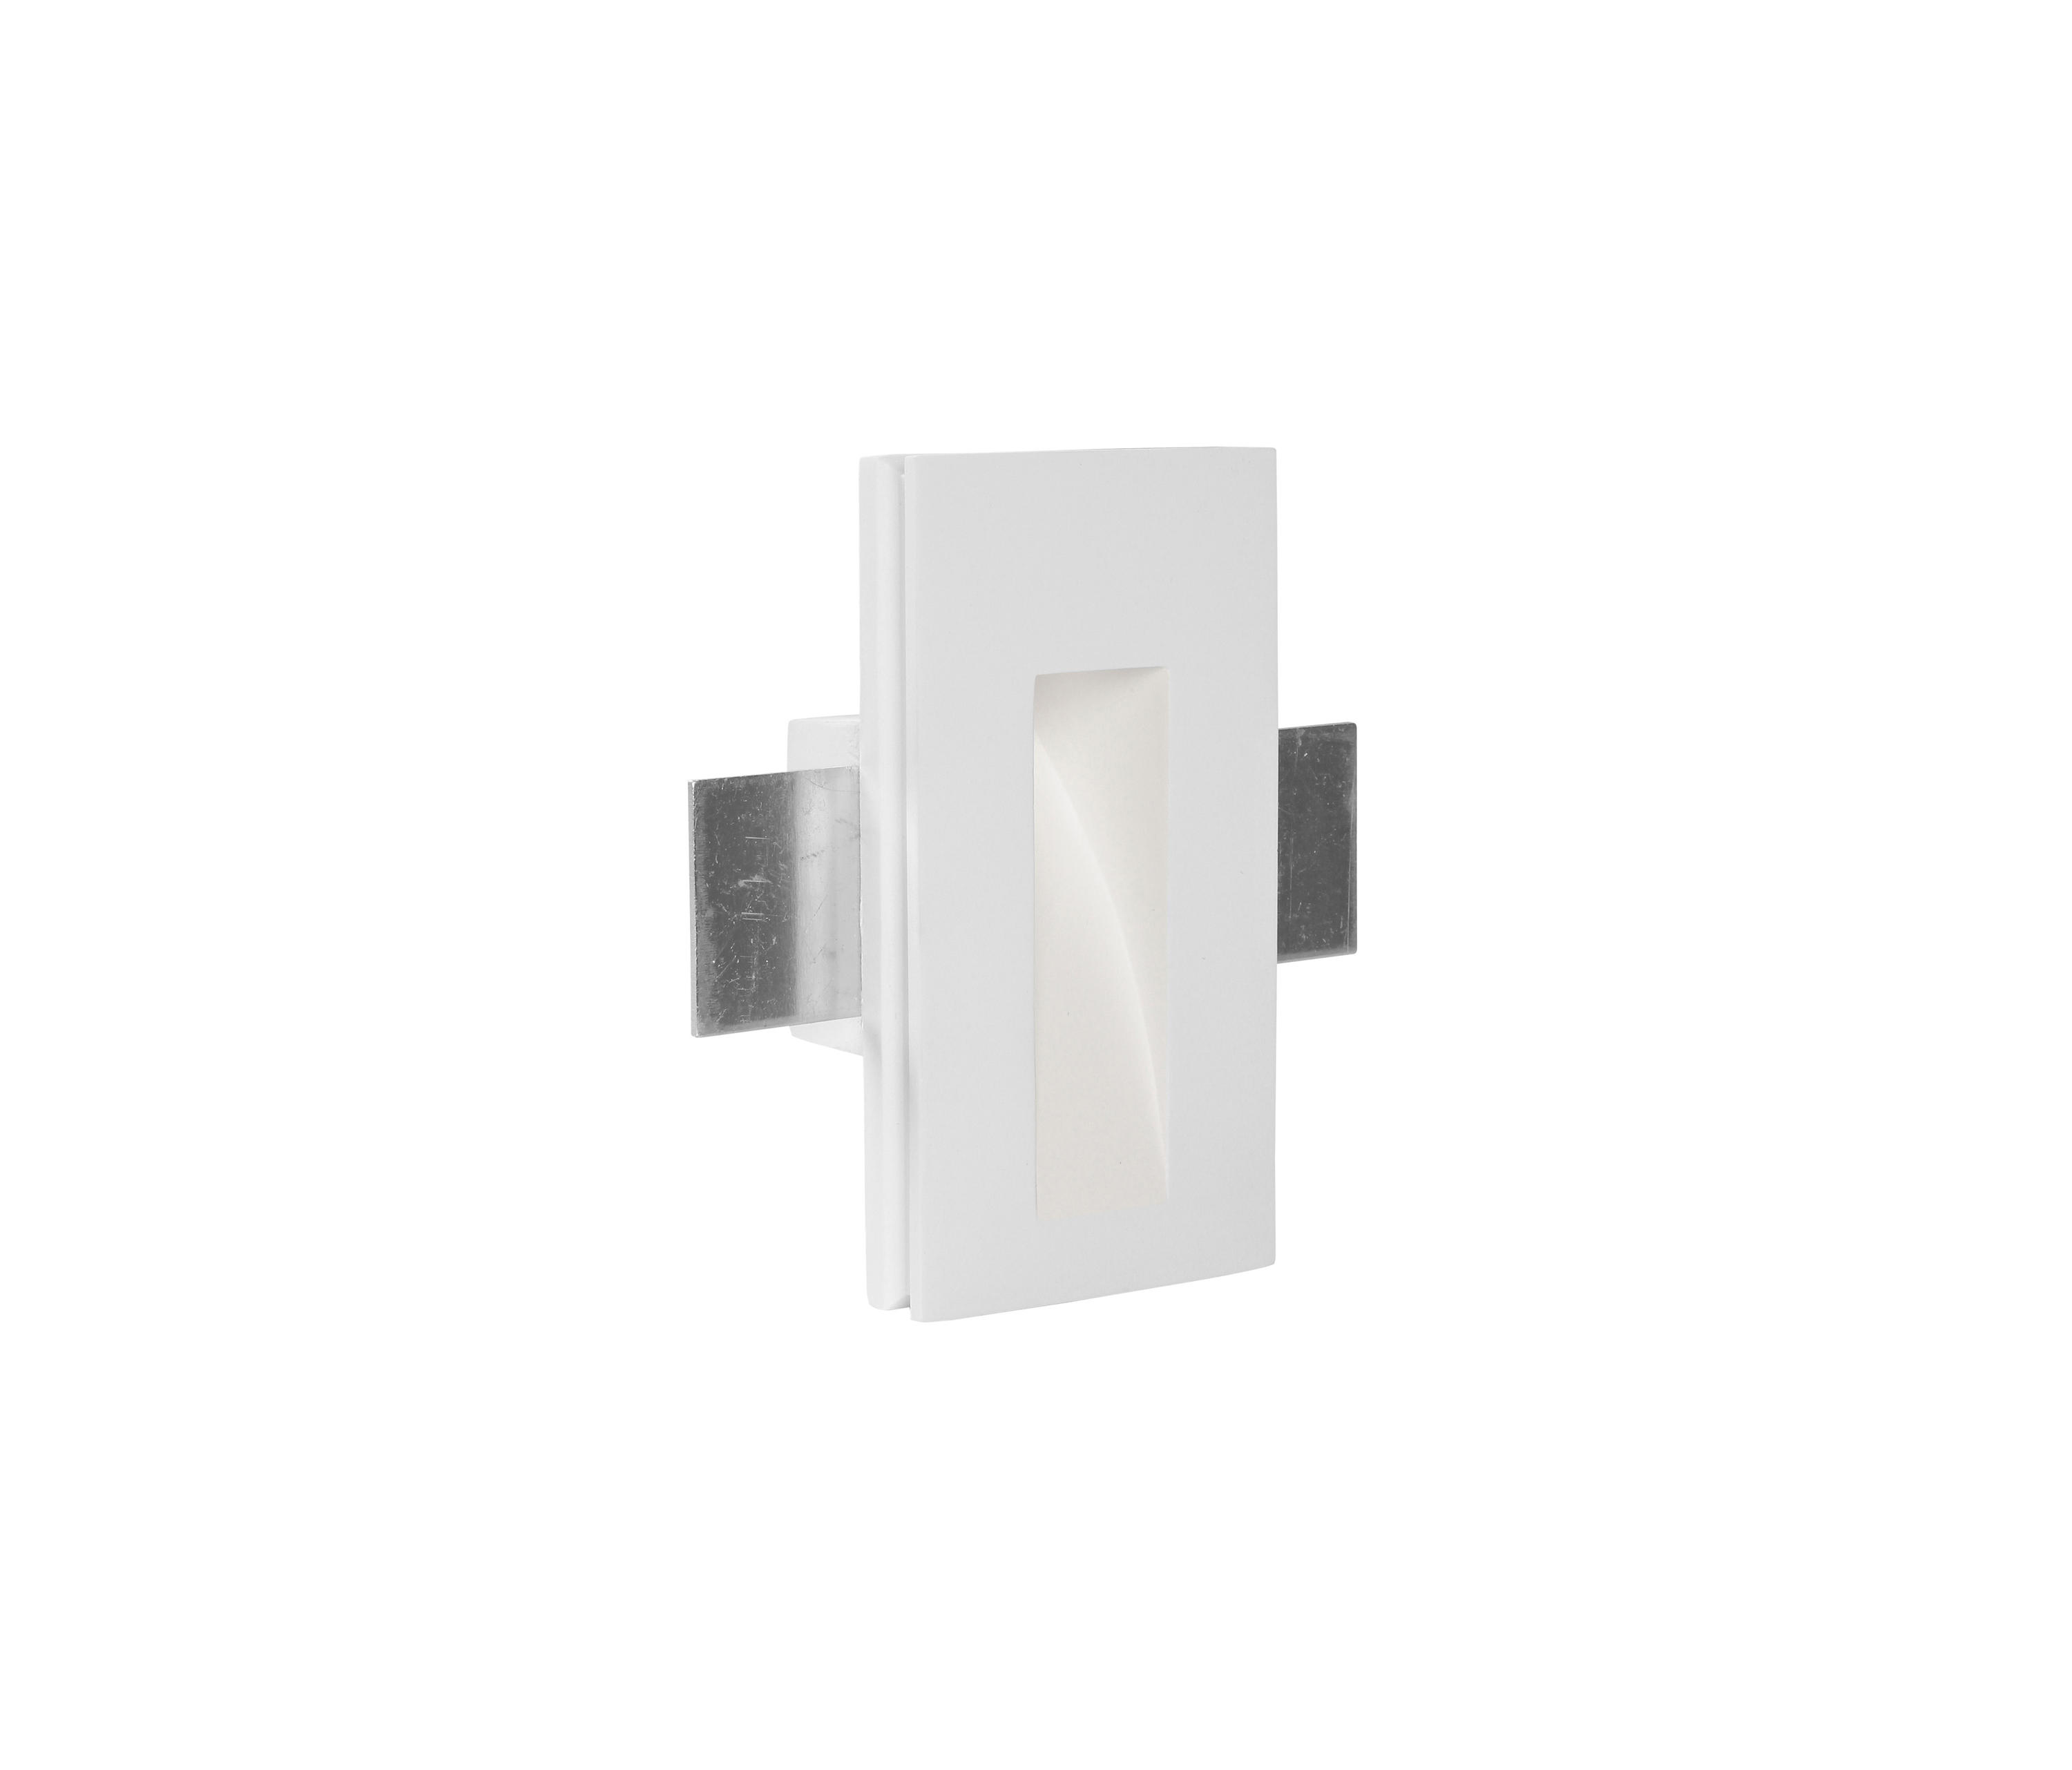 LEROS TRIMLESS LED - General lighting from Astro Lighting | Architonic